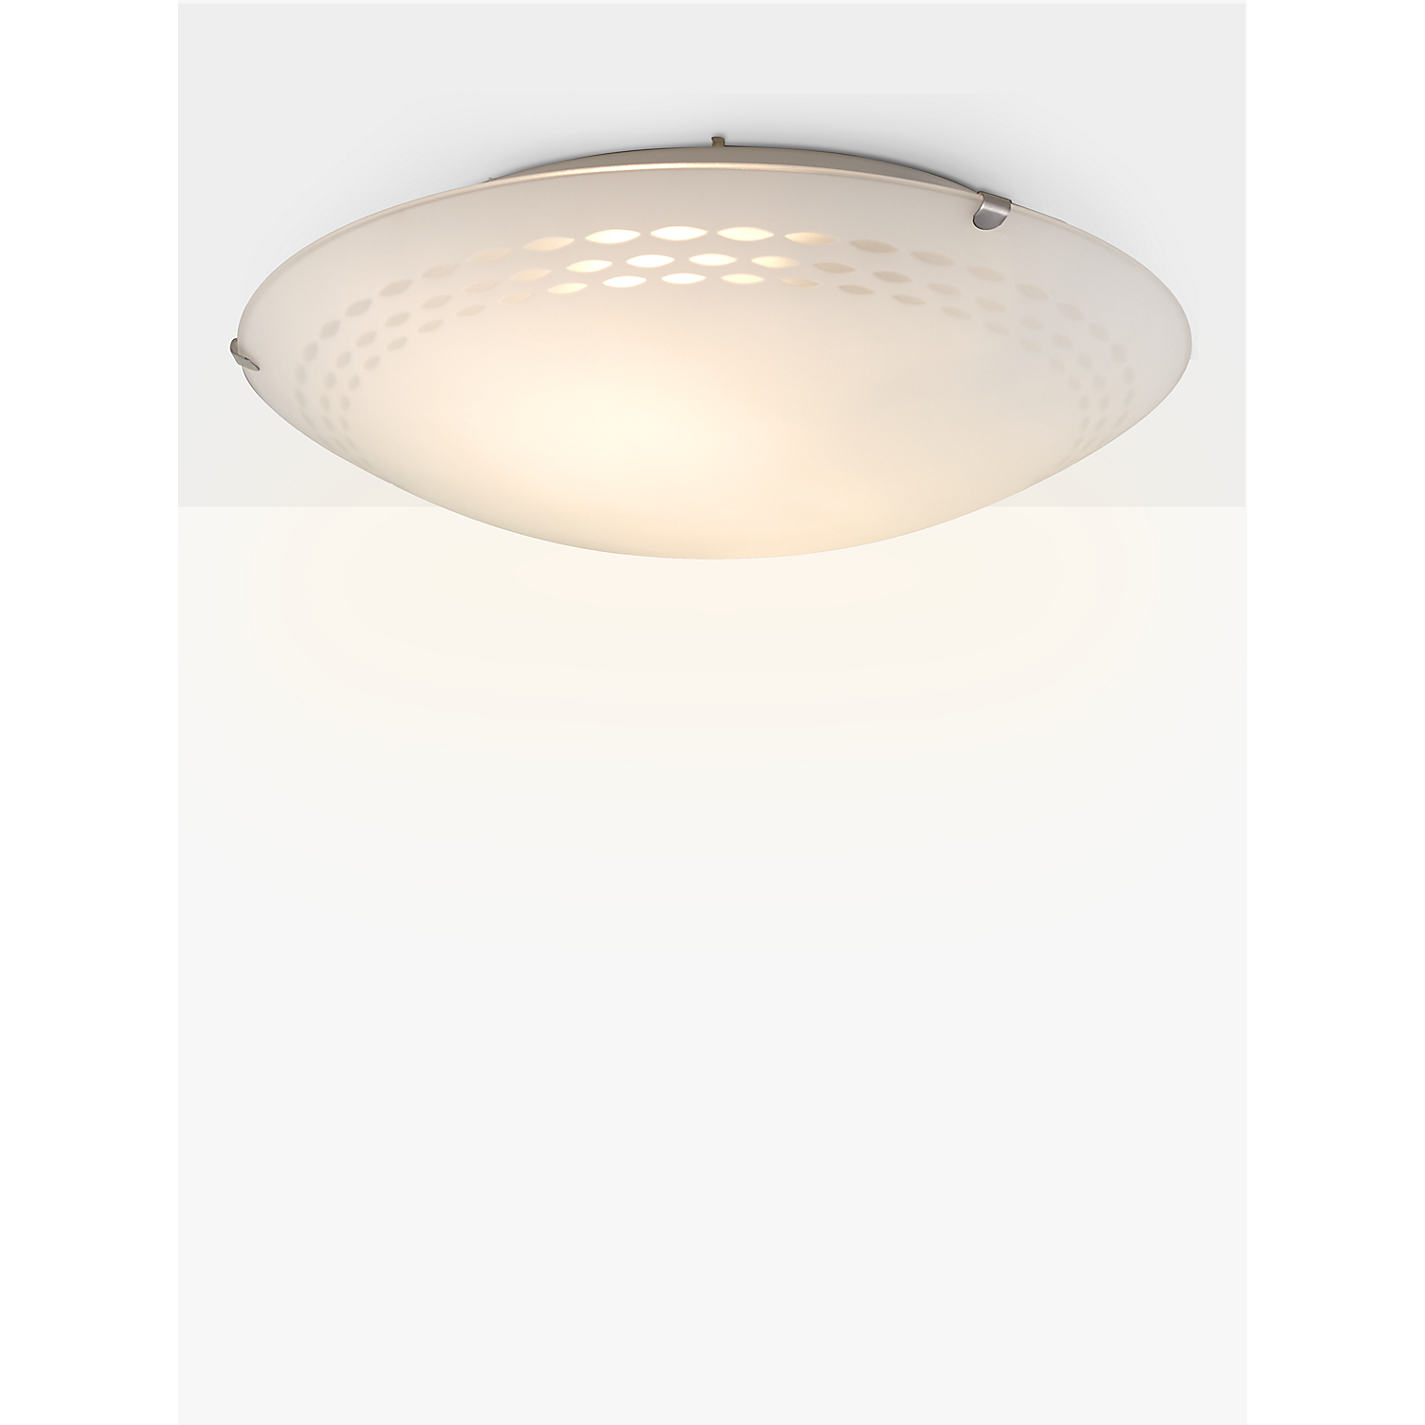 John Lewis White Ceiling Lights : Flush ceiling lights ble led bathroom